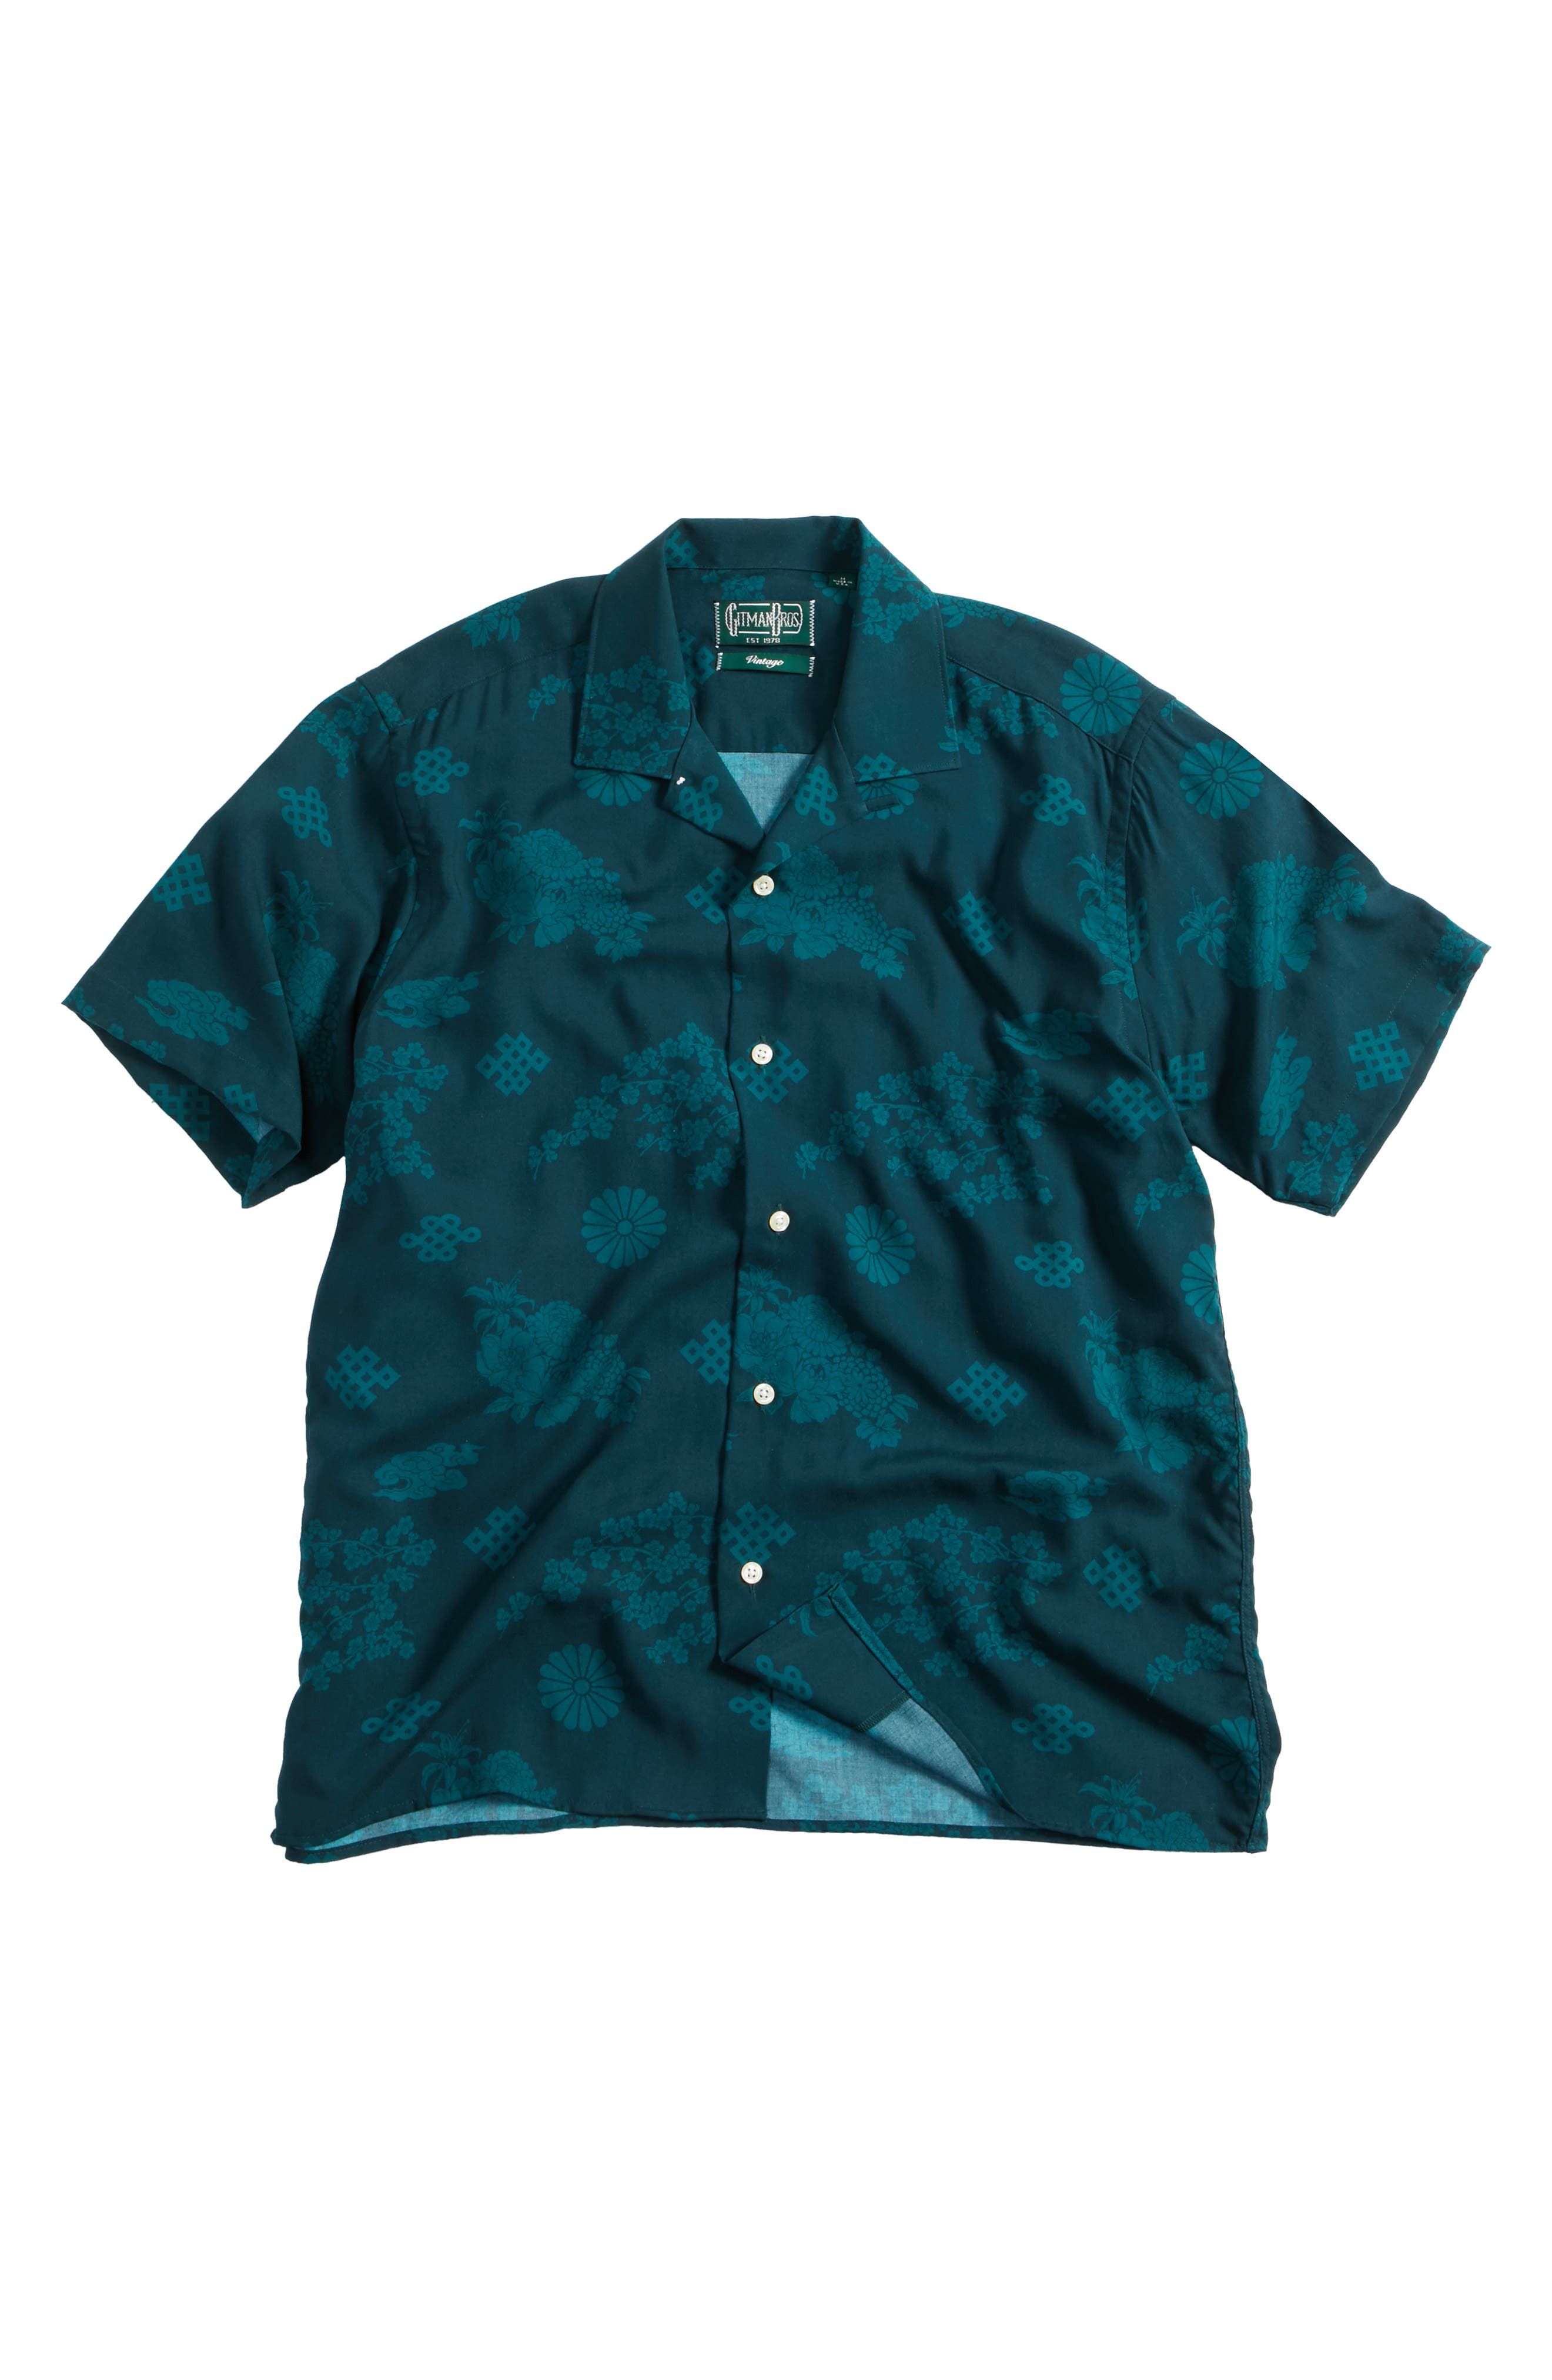 Gitman x The North Face Men's Floral Print Camp Shirt (Limited Edition)